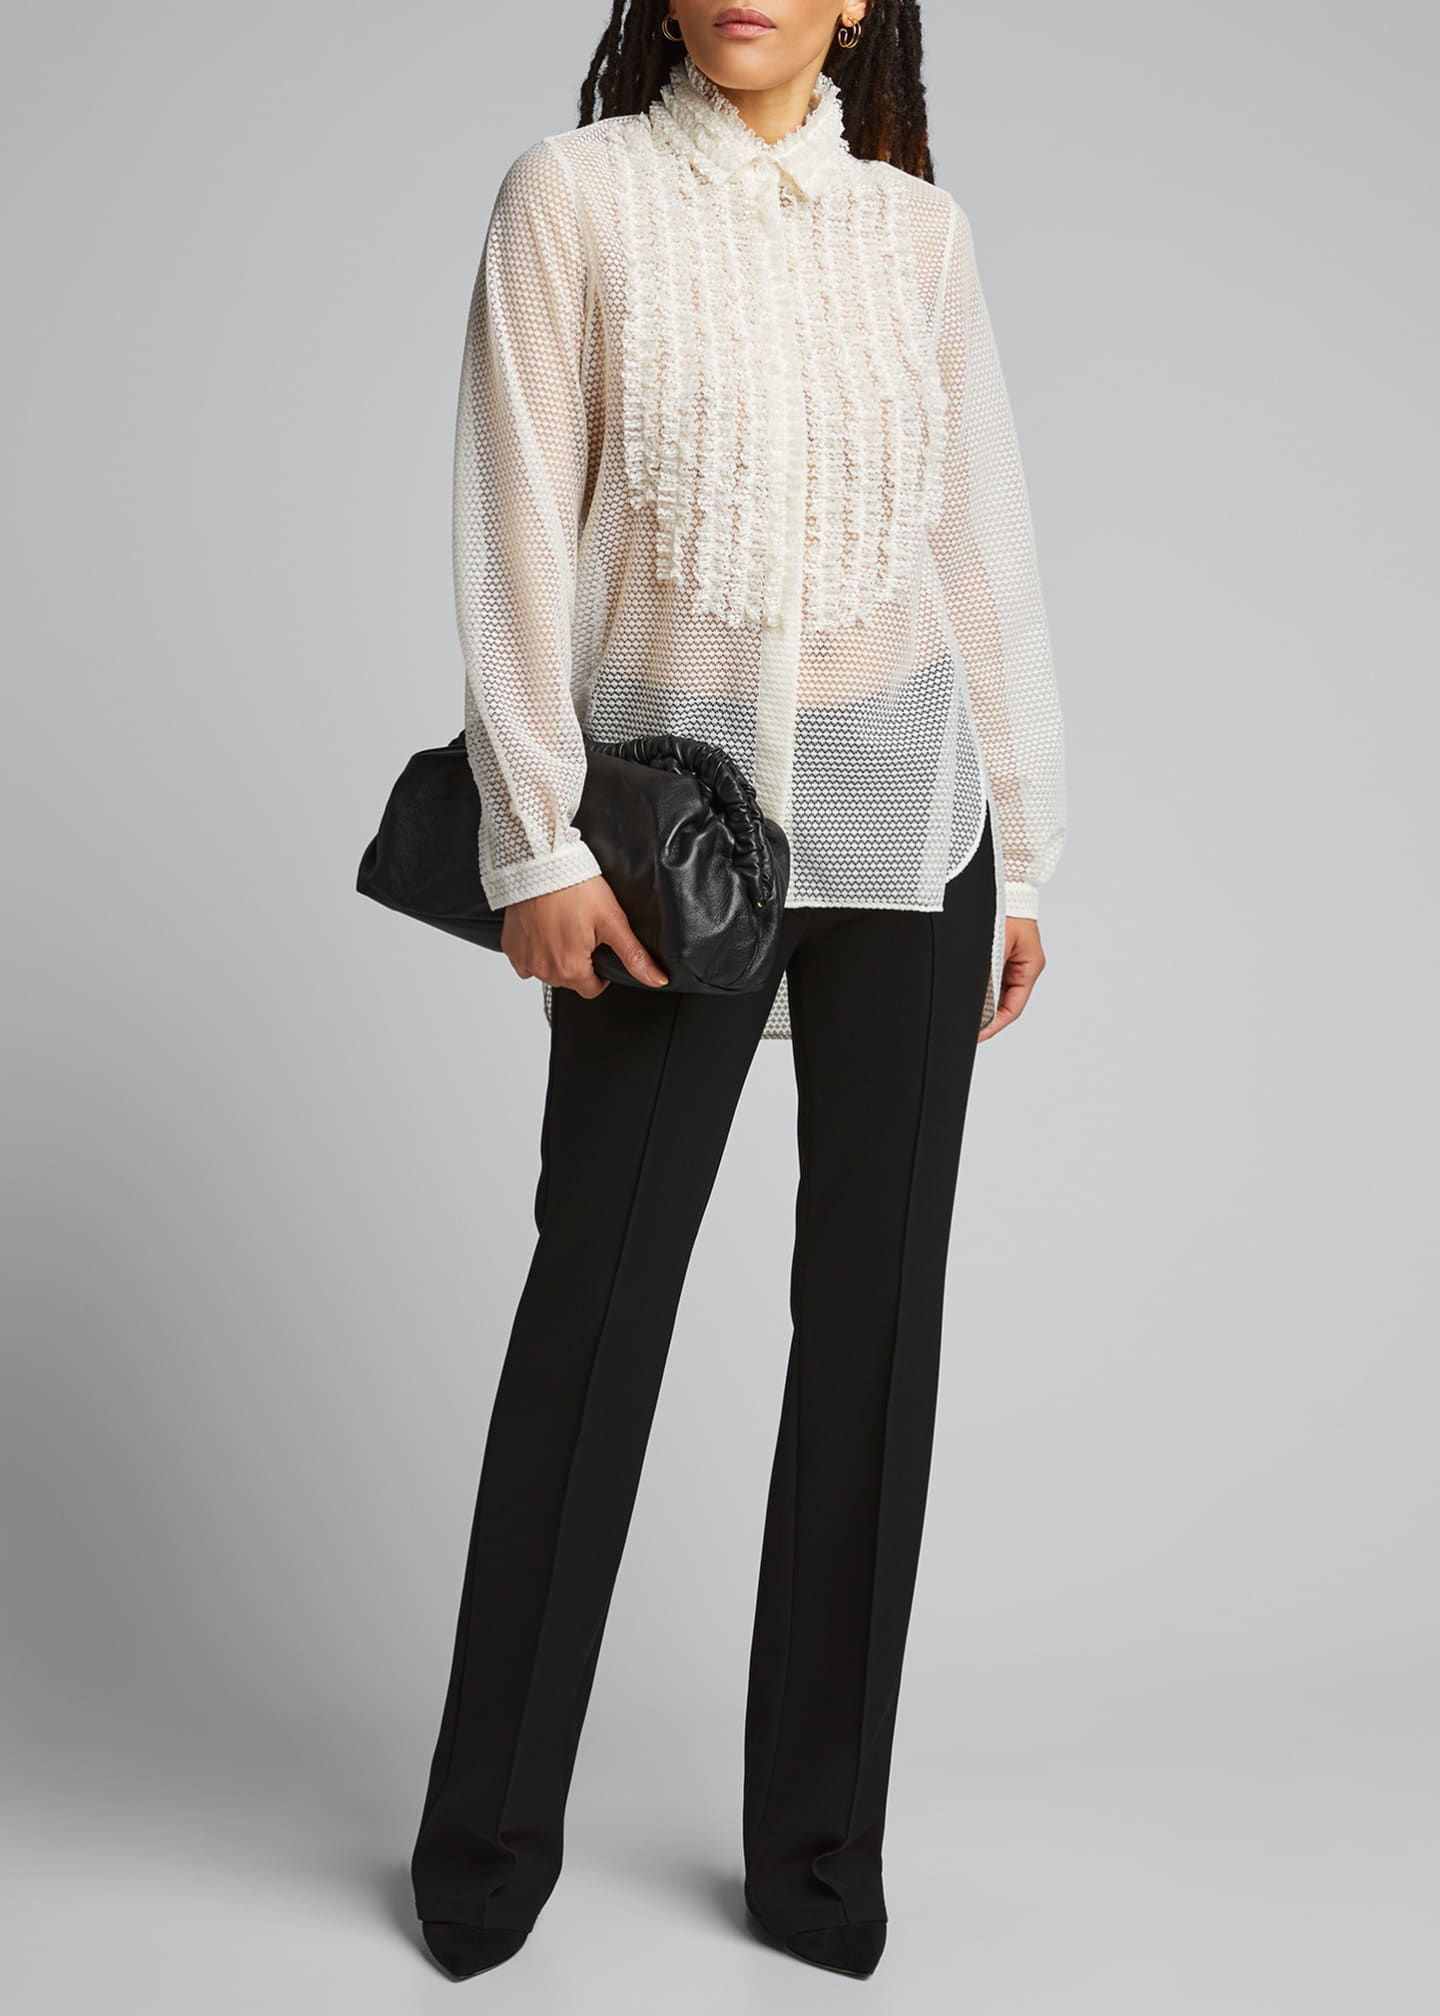 Image 1 of 5: Sakura Dotted Lace Shirt